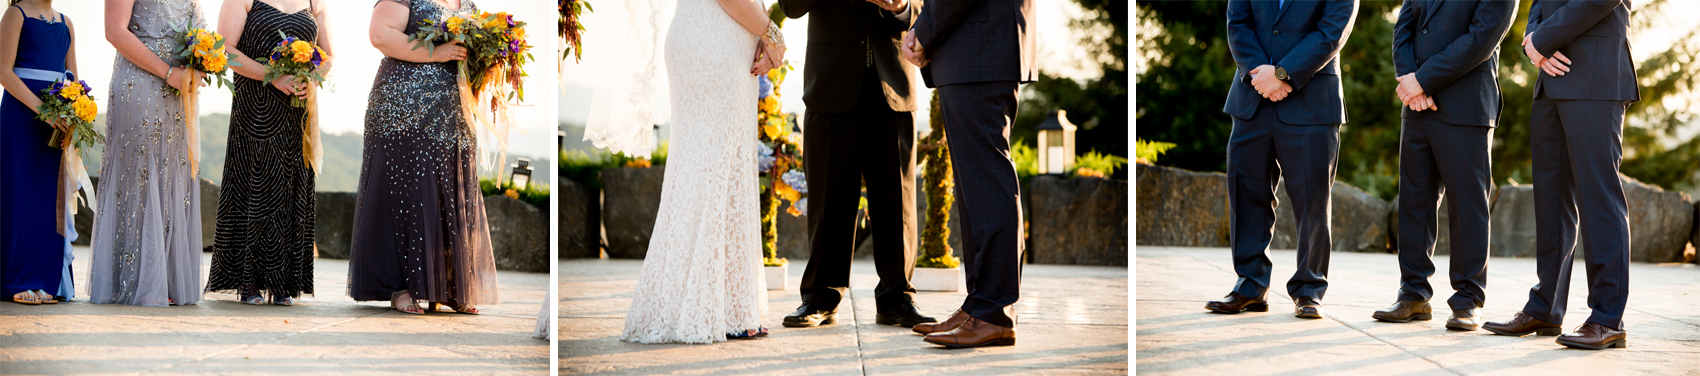 Youngberg-Hill-Weddings-017